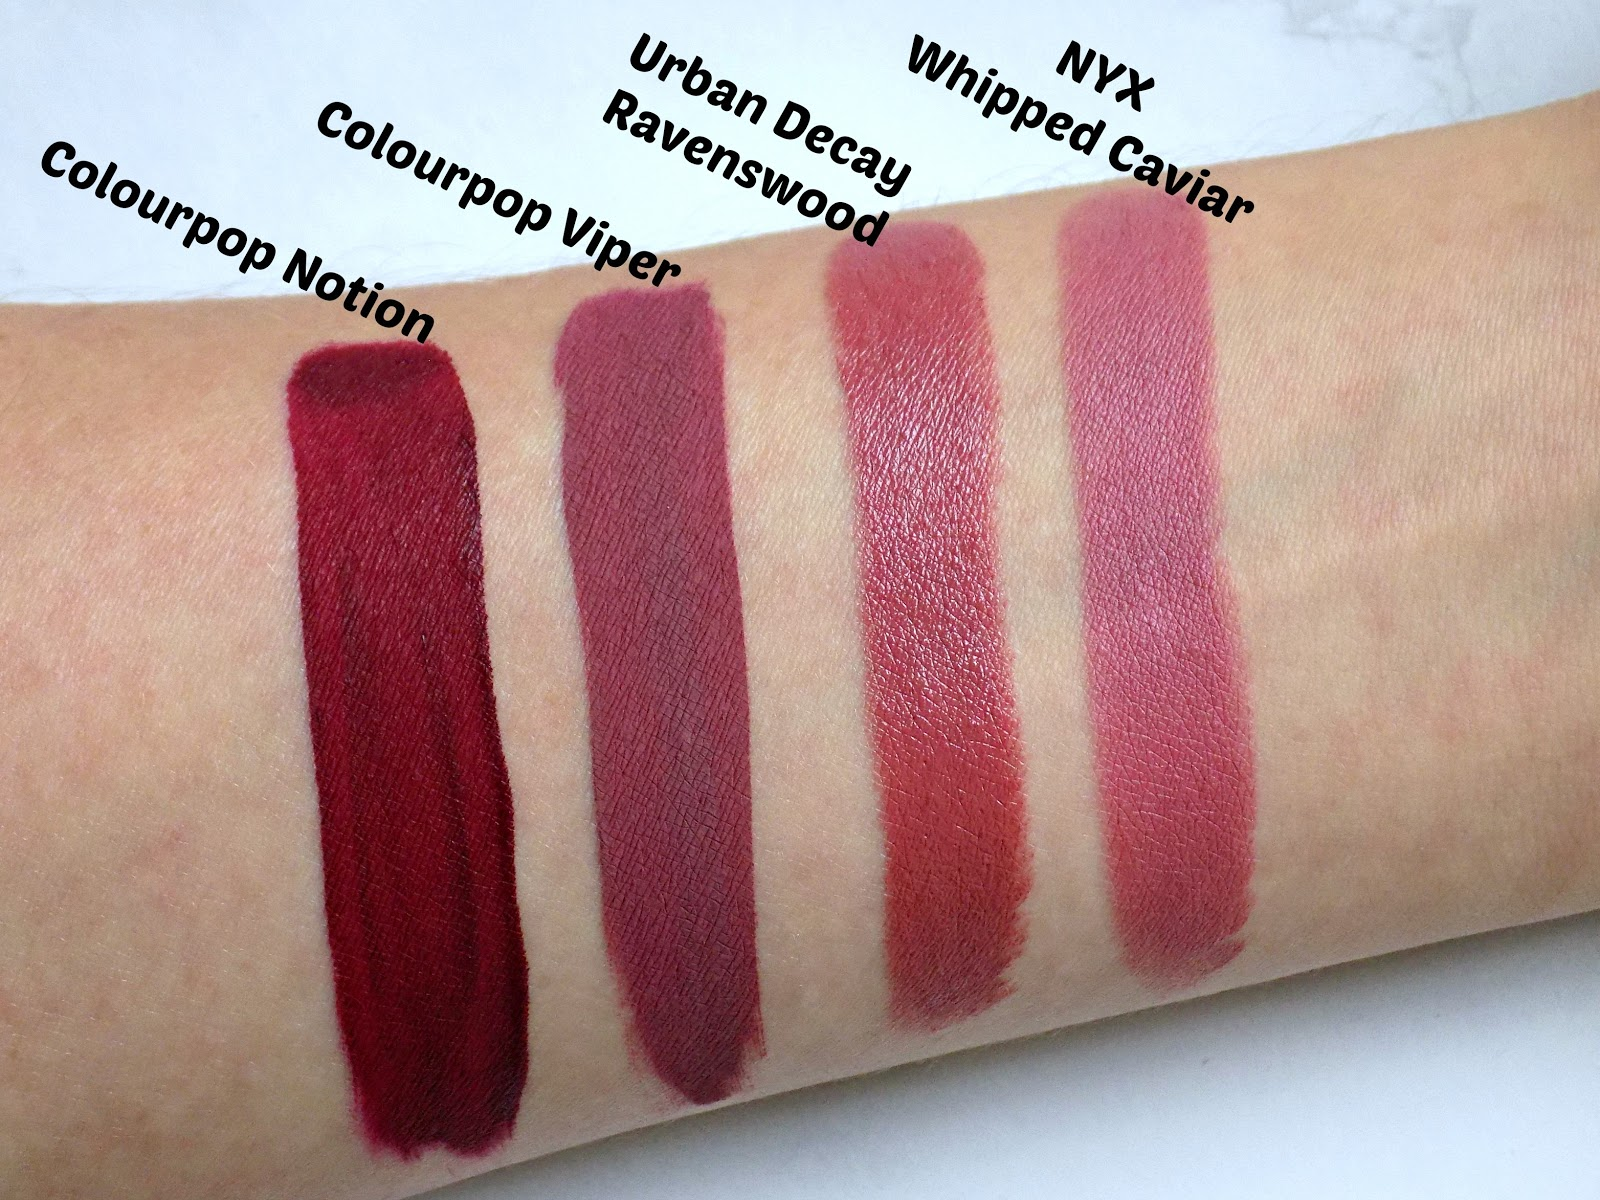 Colourpop Notion, Colourpop Viper, Urban Decay Ravenswood